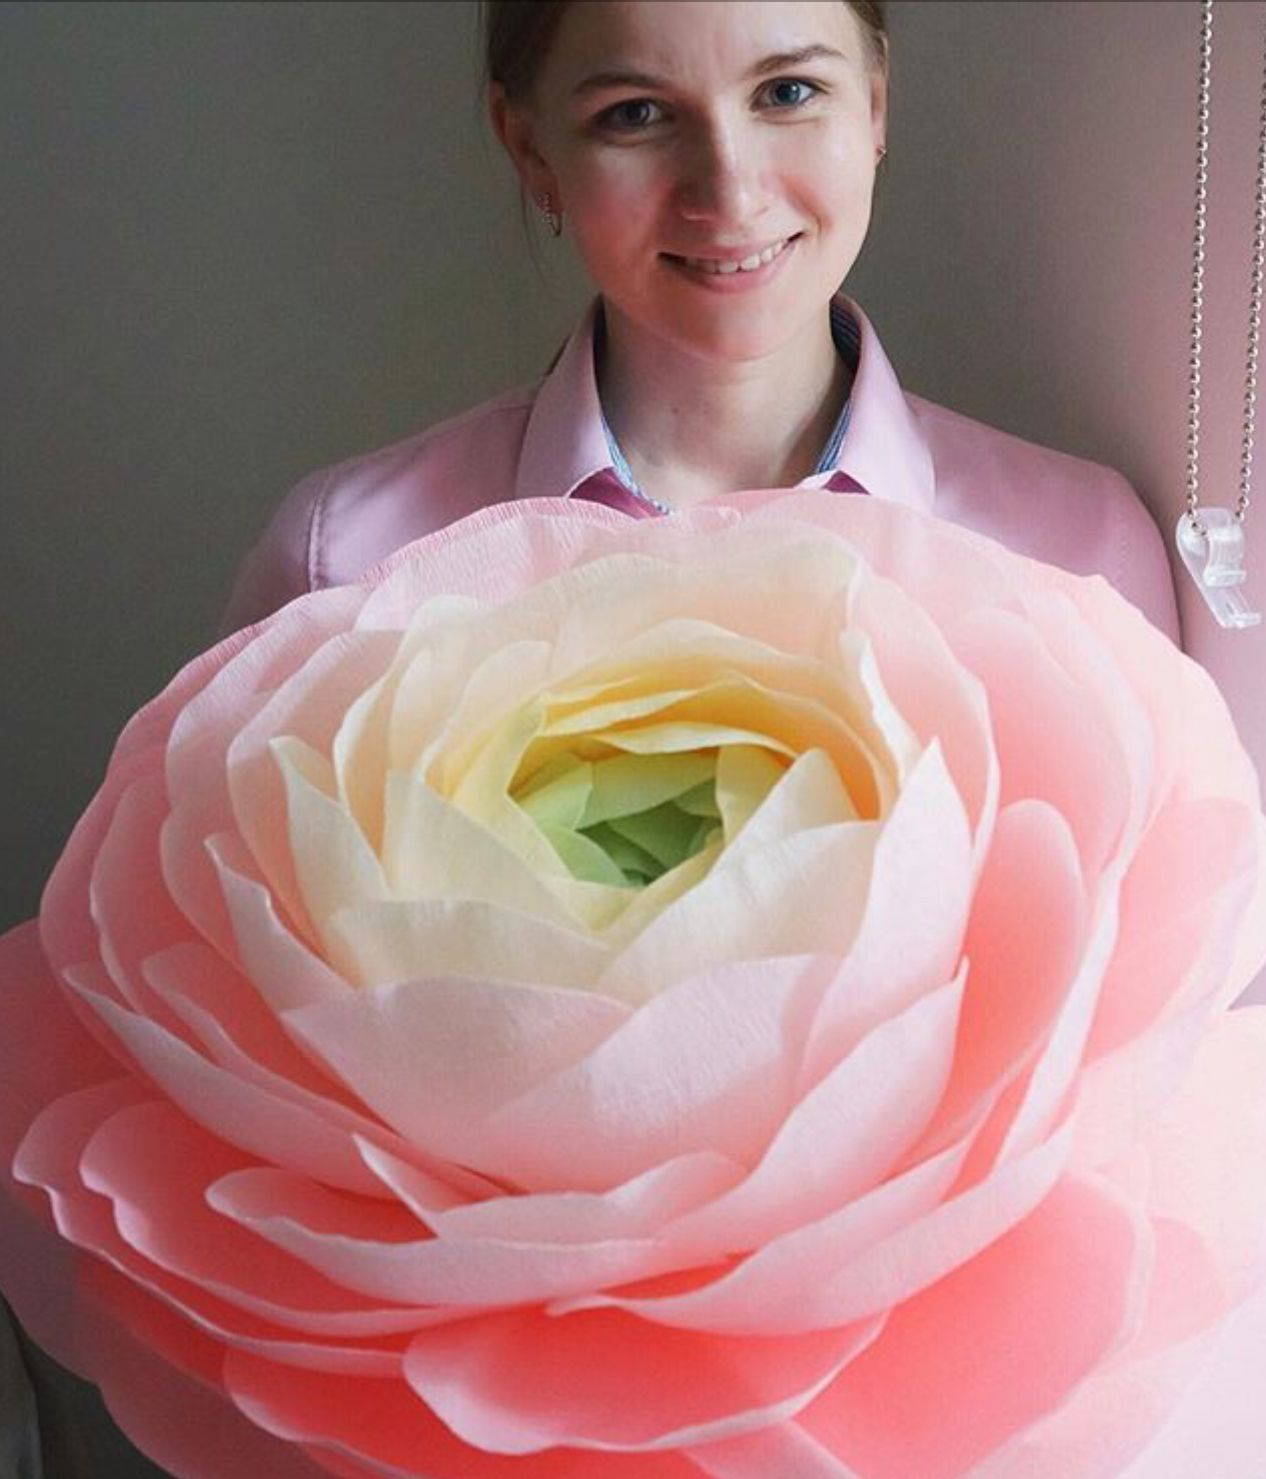 Pin by Kravets Flowers on Giant Flower Ideas (With images